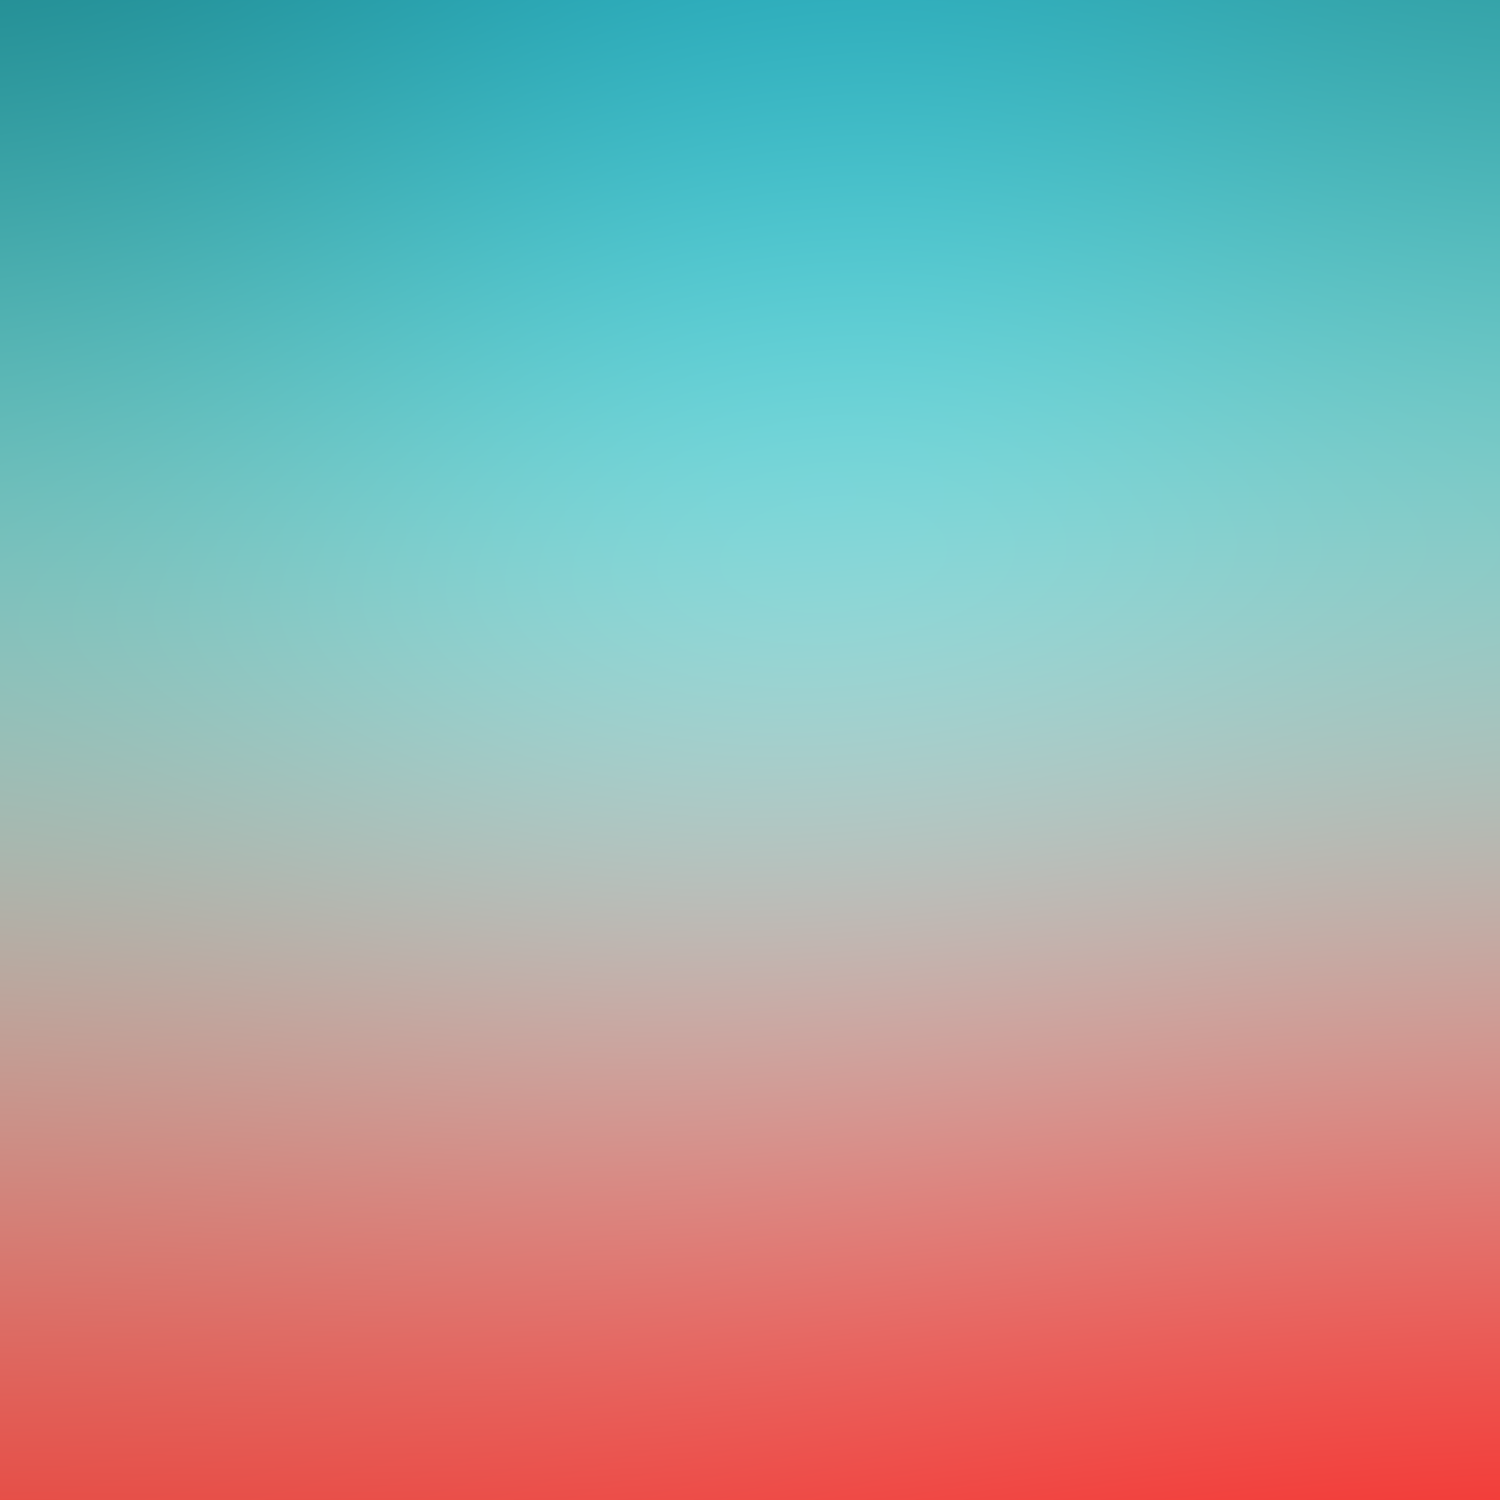 gradients_8.png